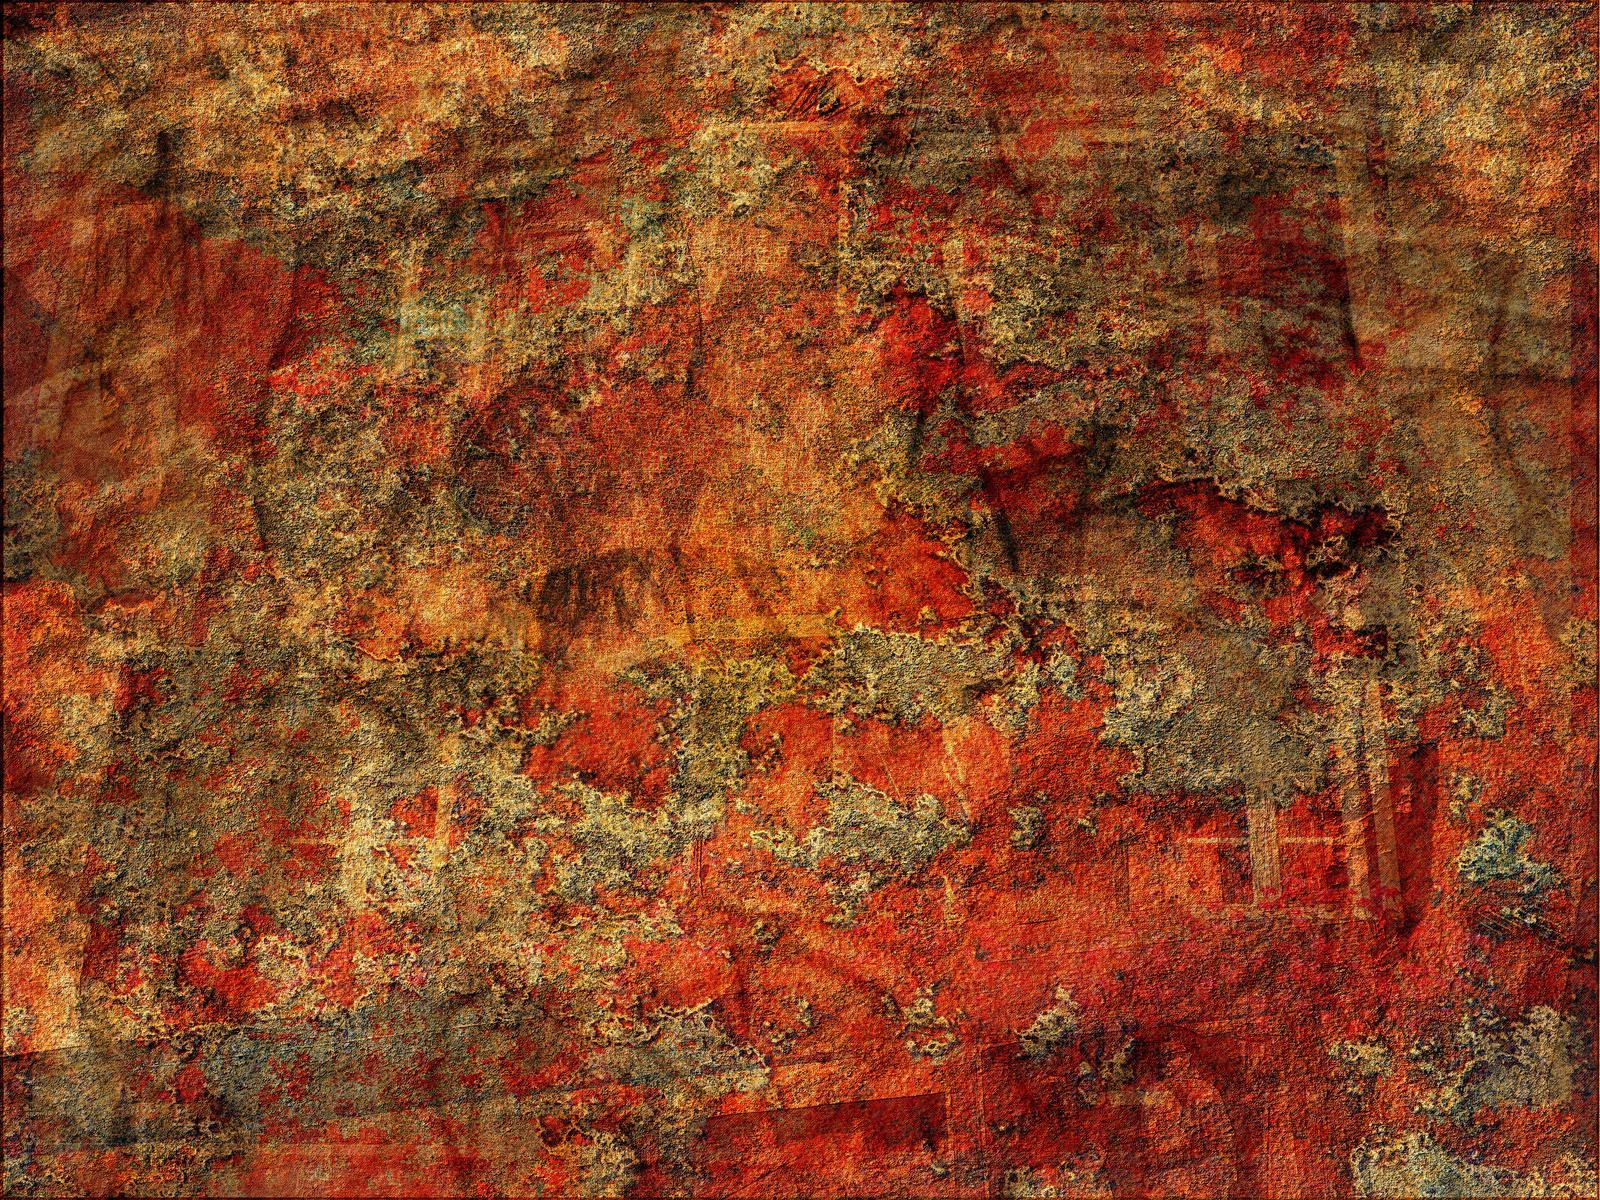 Texture 16 by Sergiba